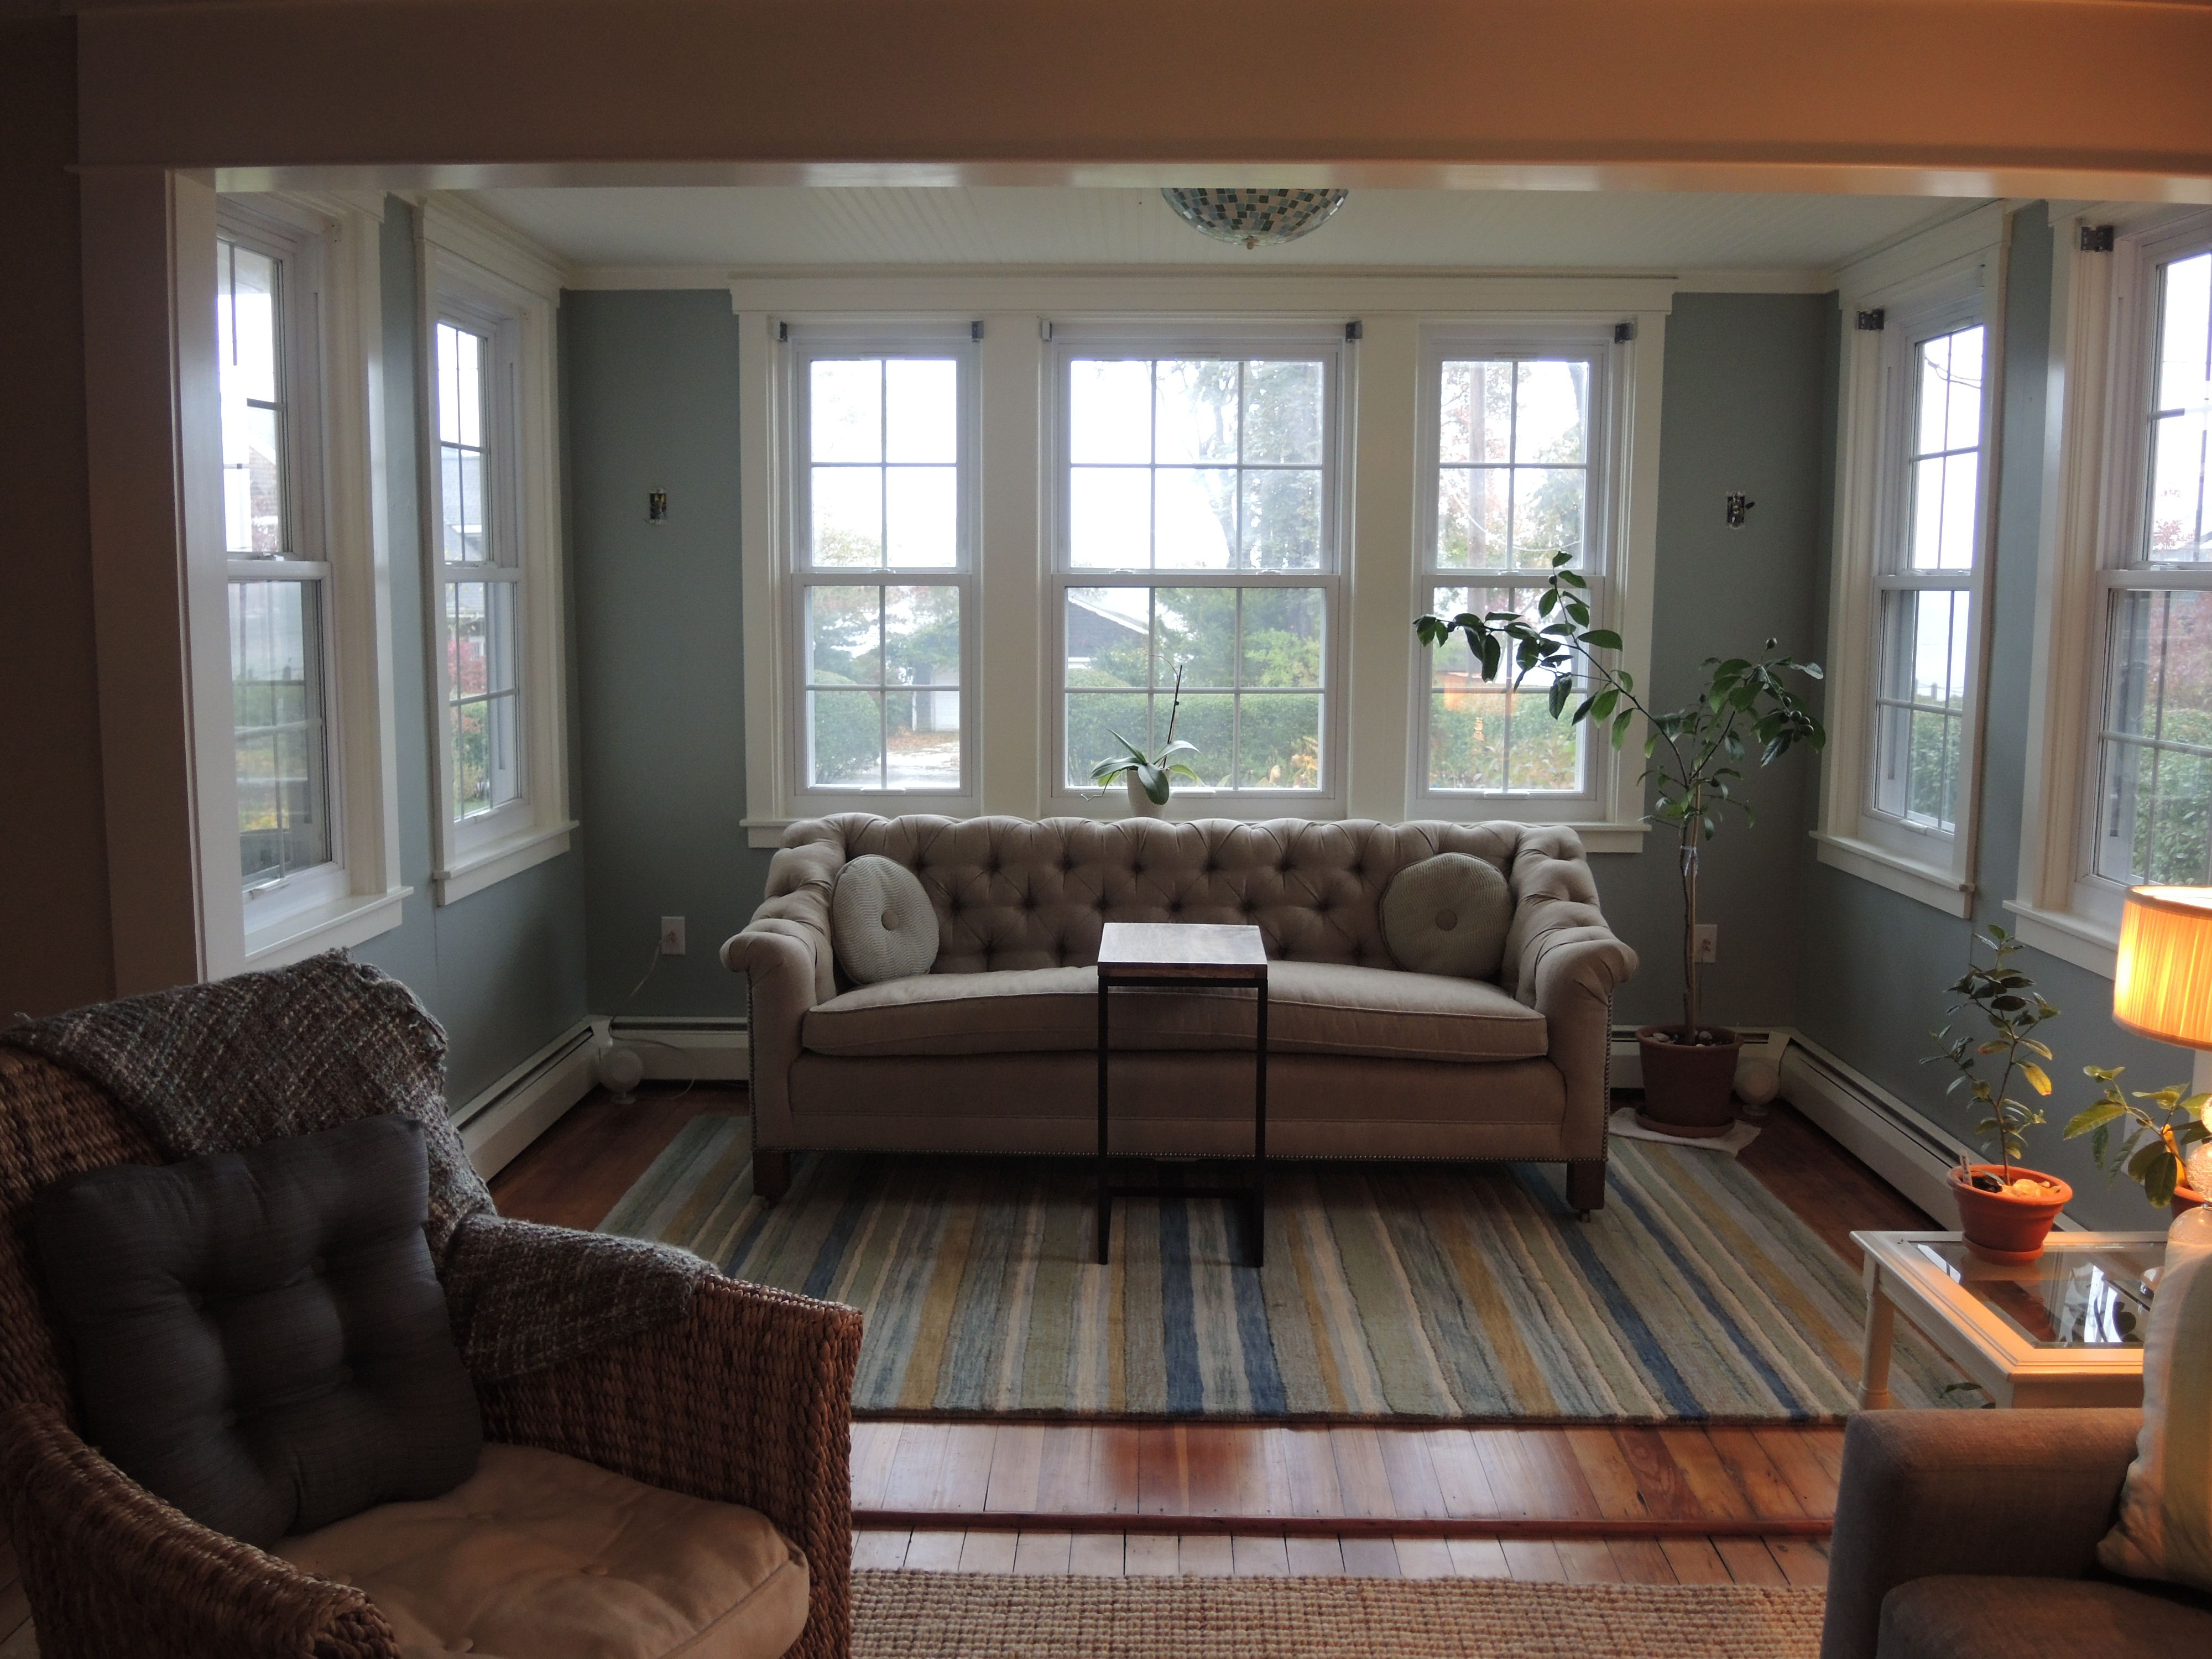 Sunroom Sherwin Williams Silvermist Company C Sheffield Stripe Rug Restored Antique Chesterfield What Nex Home Sherwin Williams Paint Colors Living Room